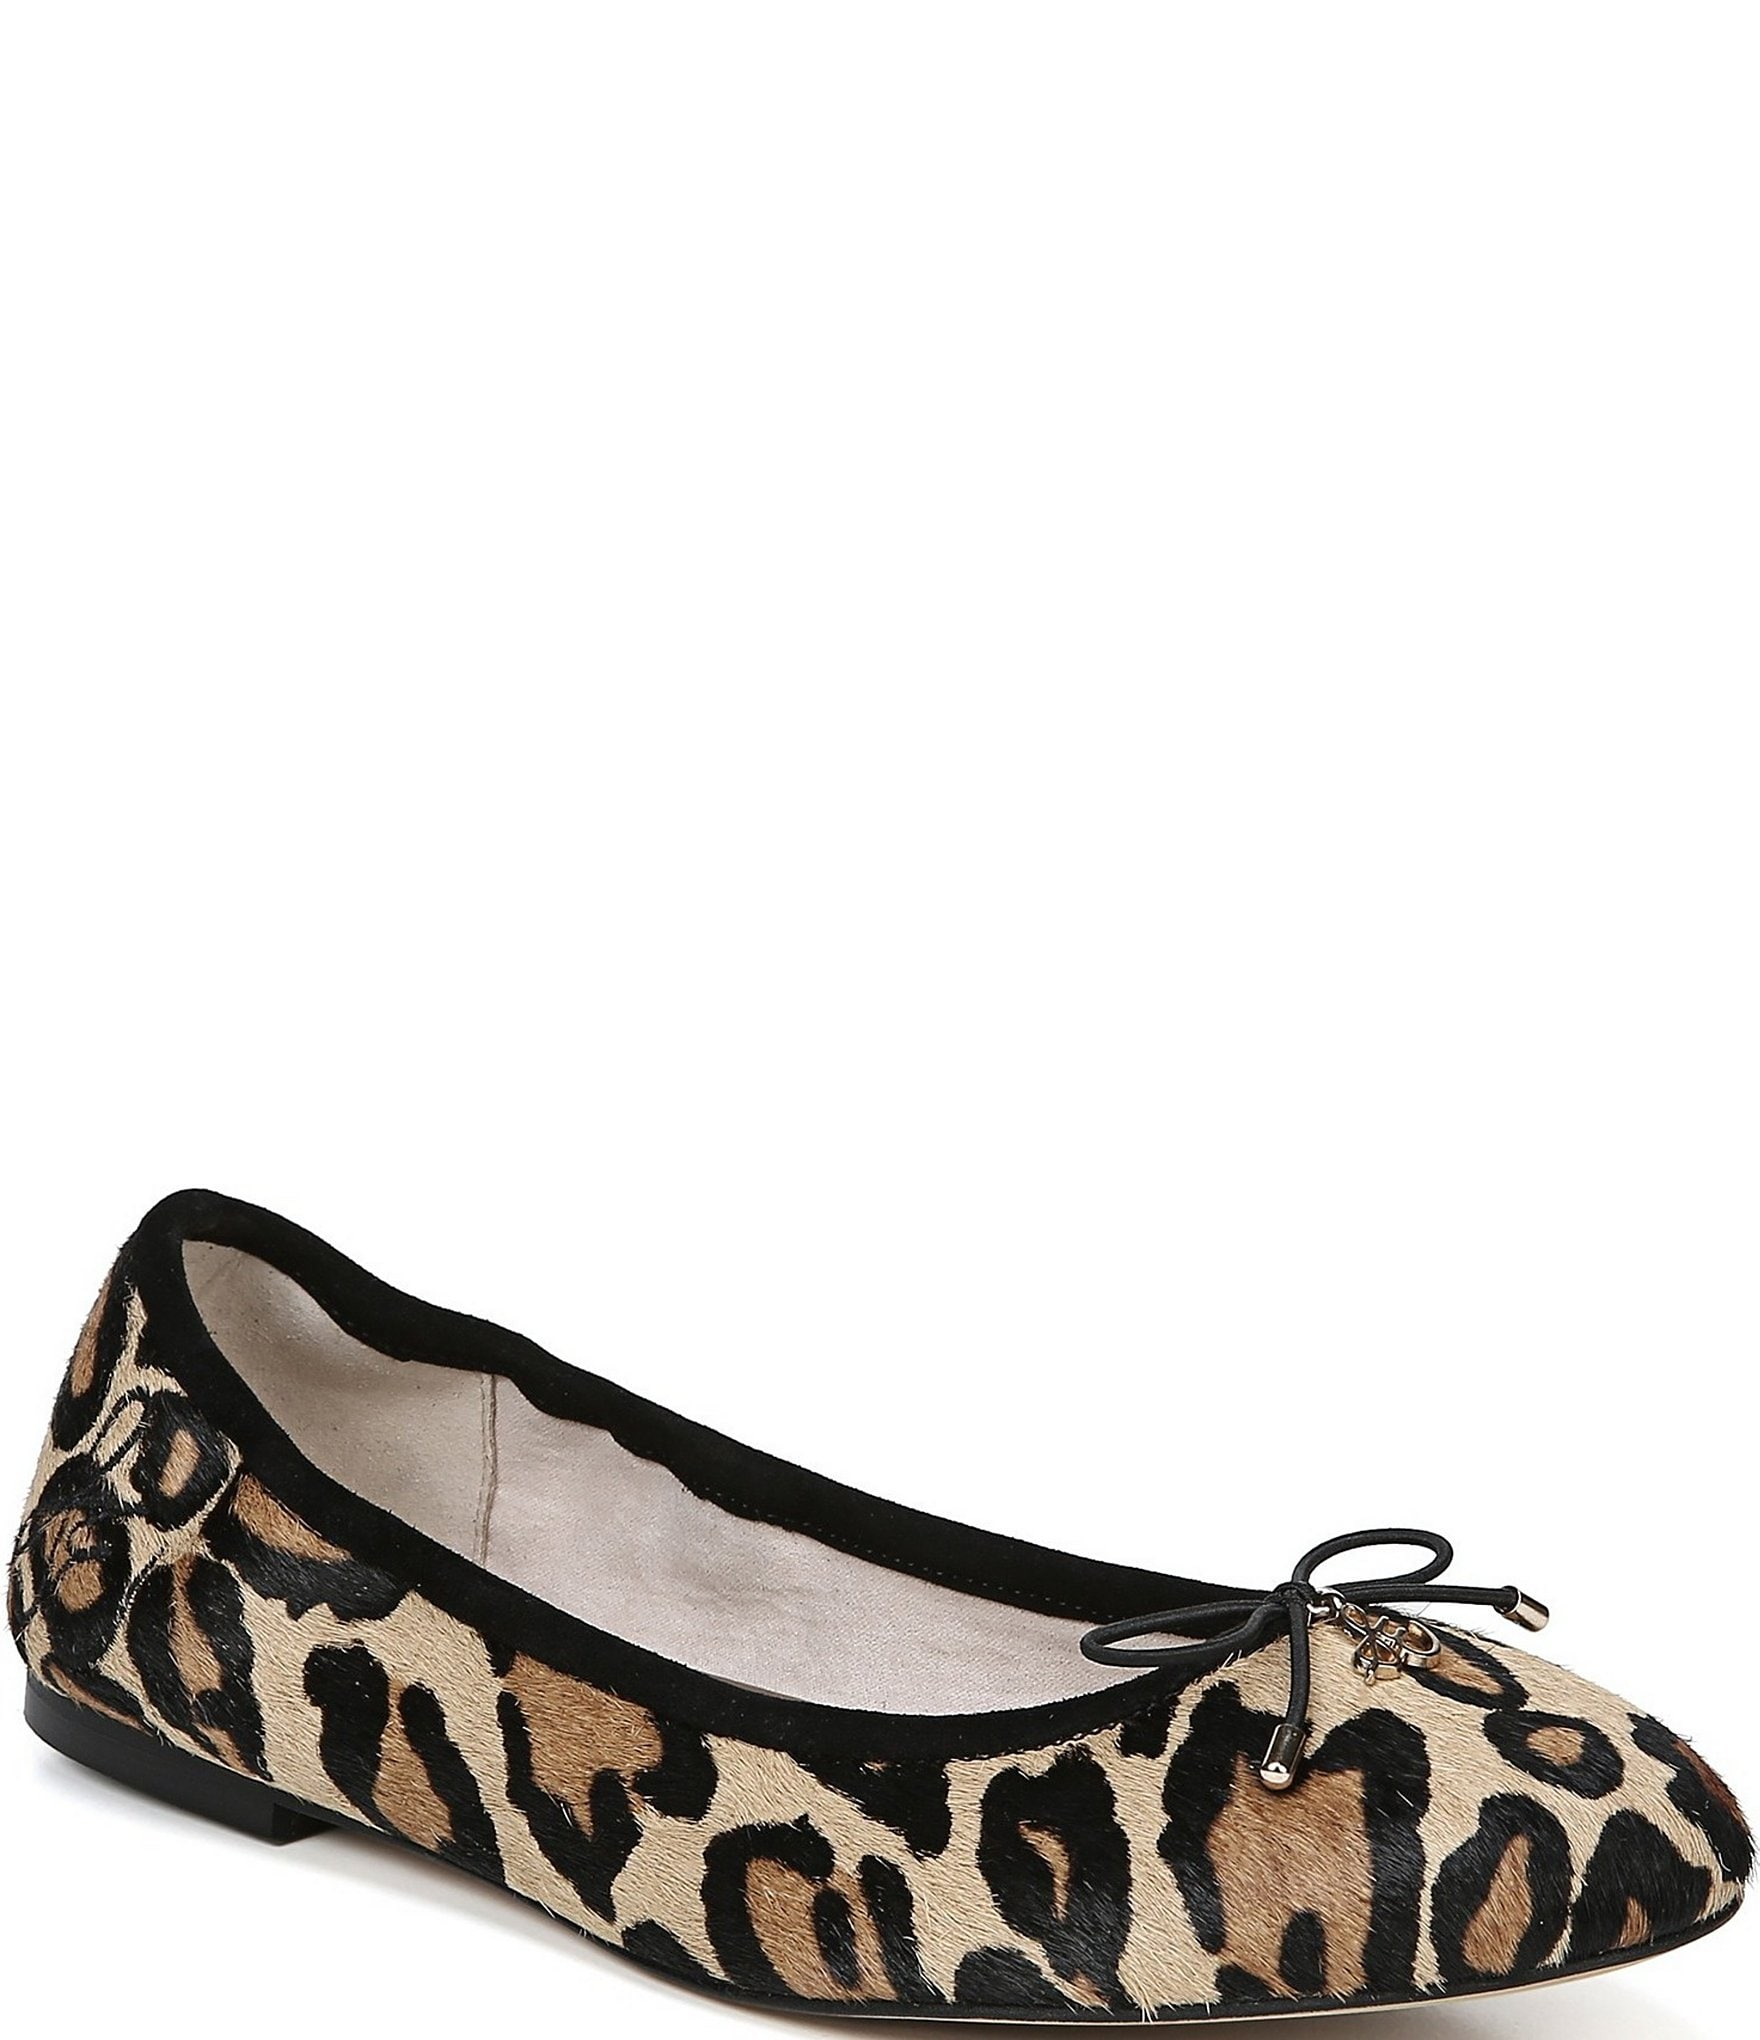 Albany Leopard Print Leather Flats